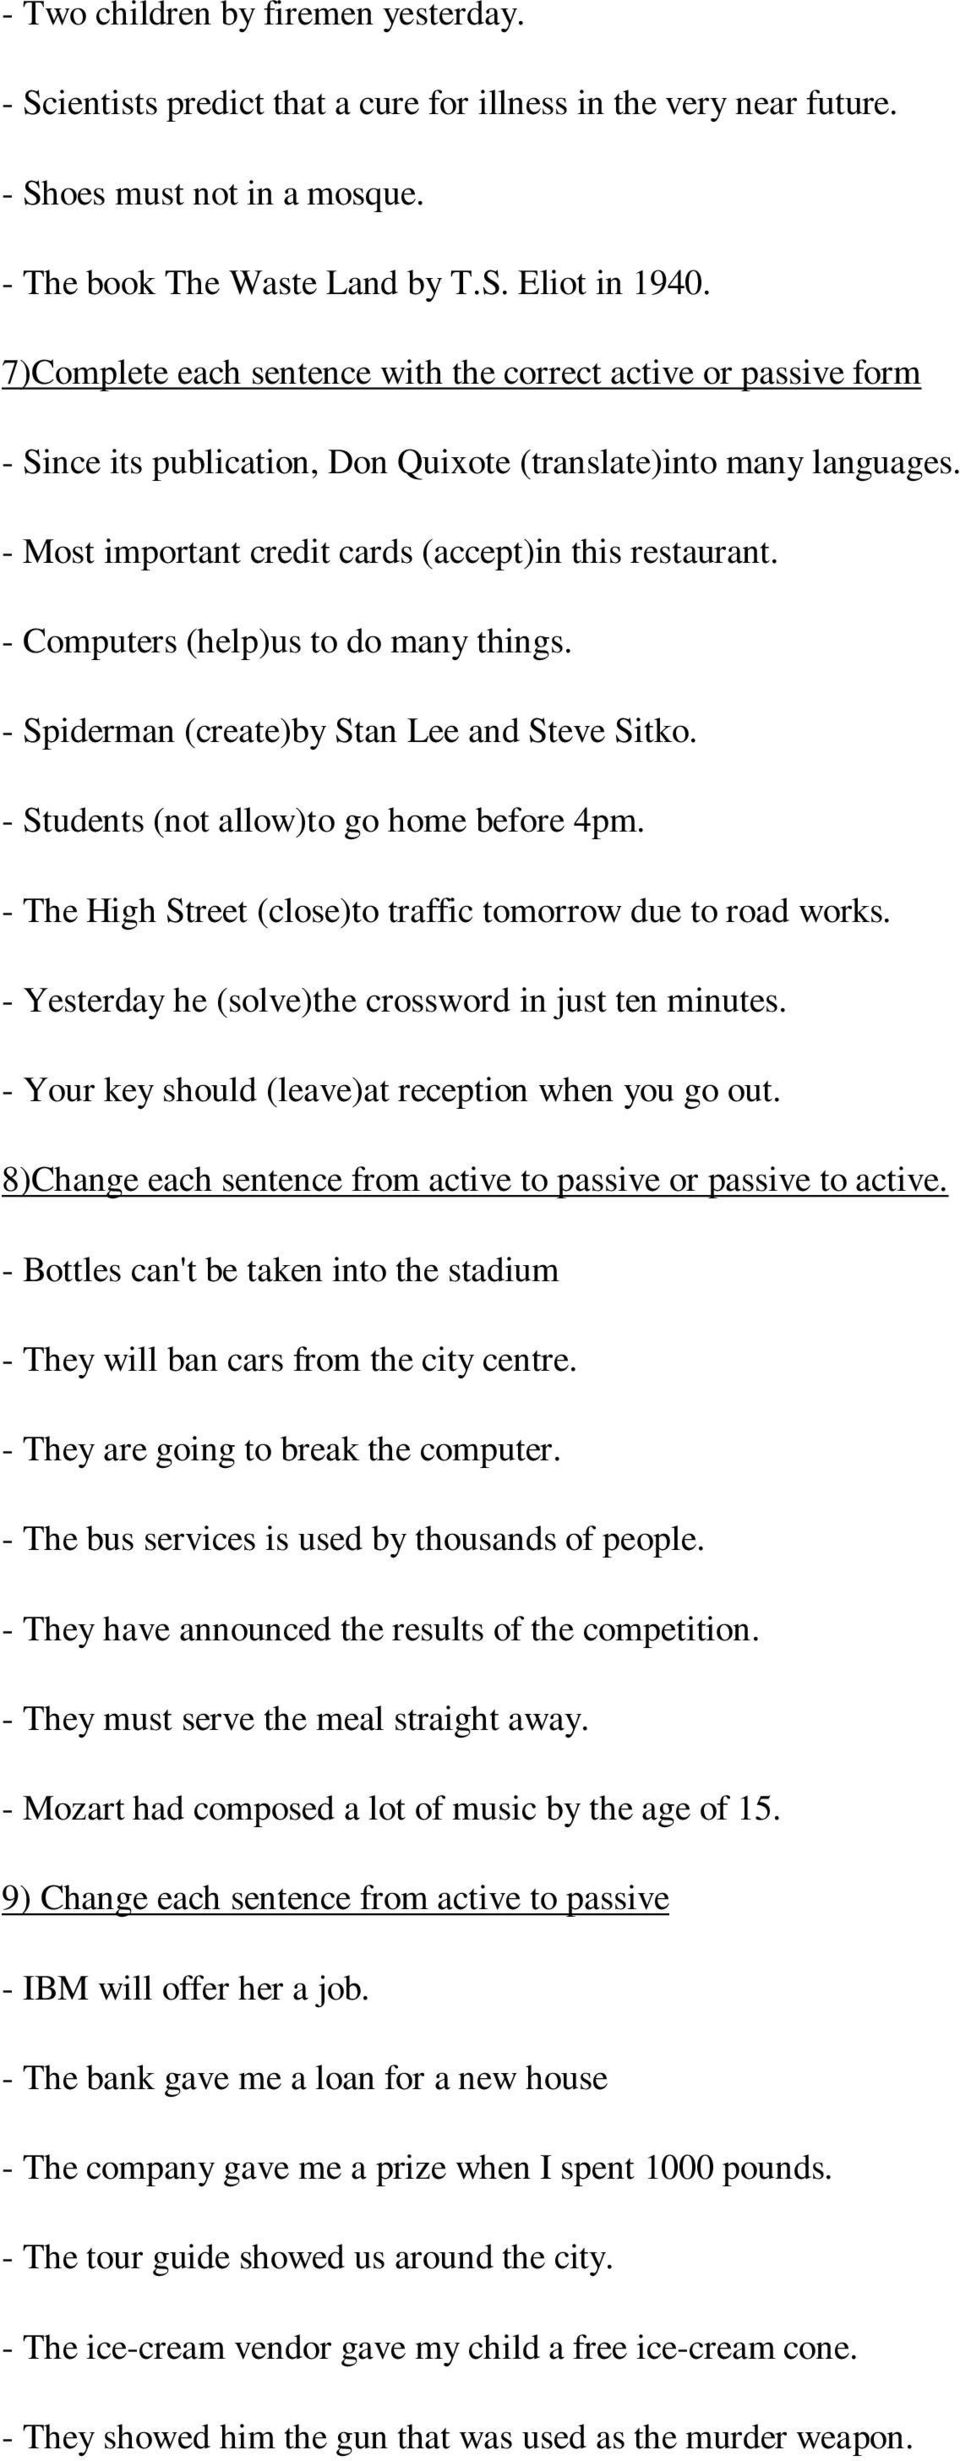 - Computers (help)us to do many things. - Spiderman (create)by Stan Lee and Steve Sitko. - Students (not allow)to go home before 4pm. - The High Street (close)to traffic tomorrow due to road works.